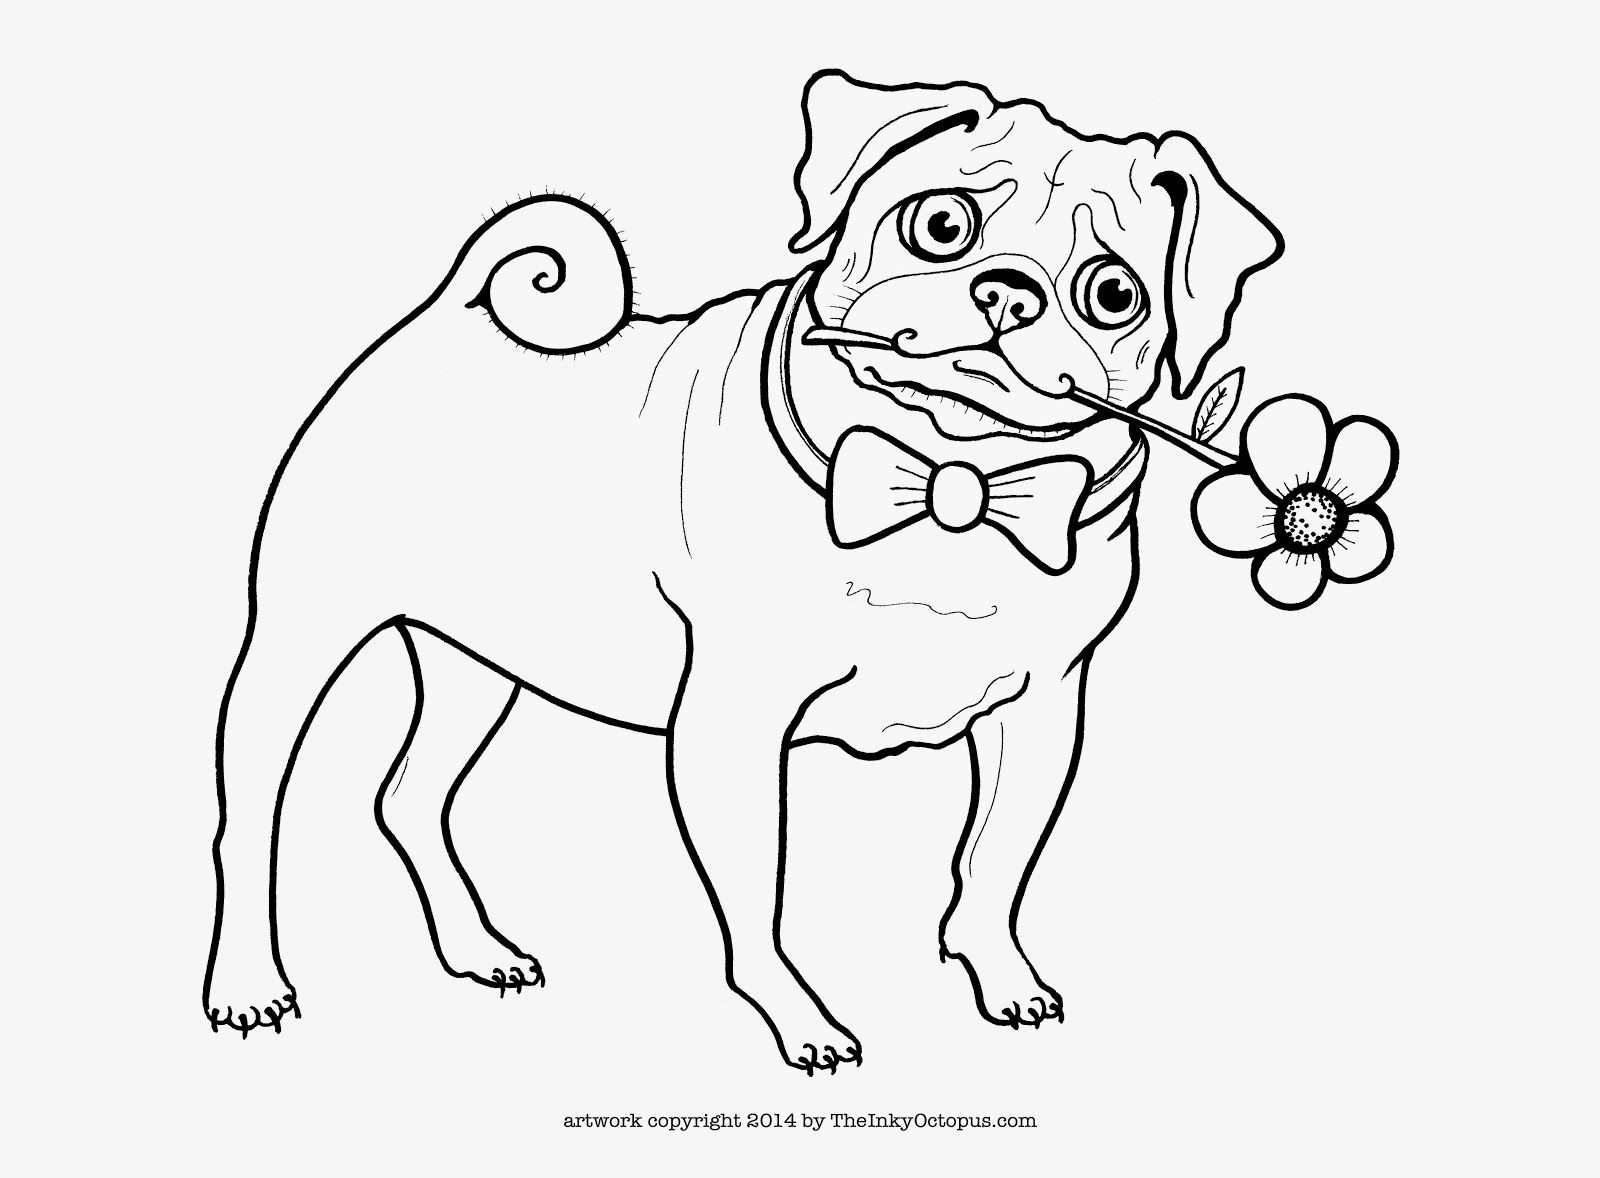 pug puppy coloring pages pug coloring pages printable coloring home pages coloring pug puppy